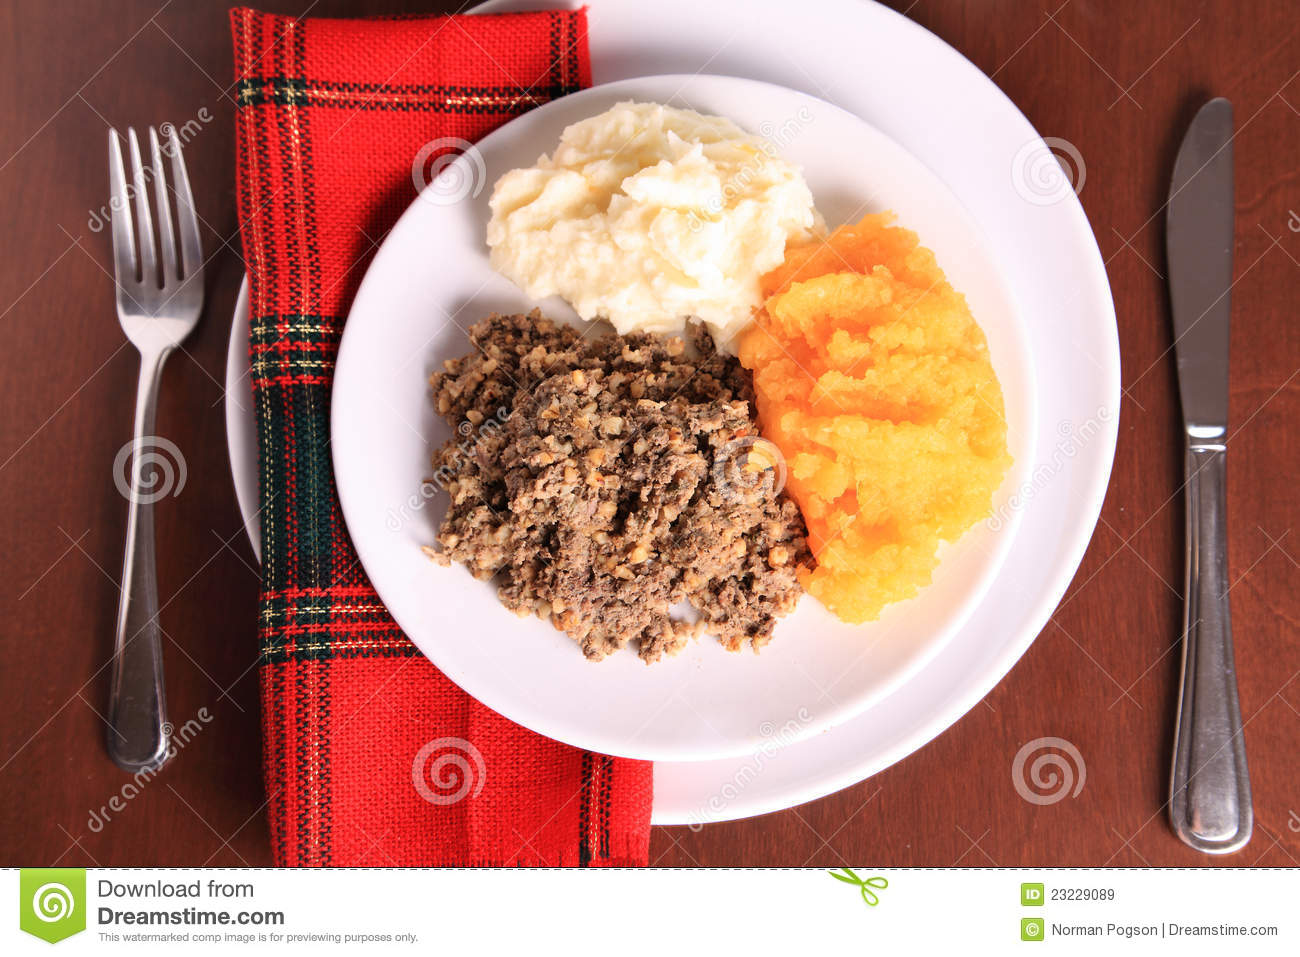 Image result for no copyright haggis